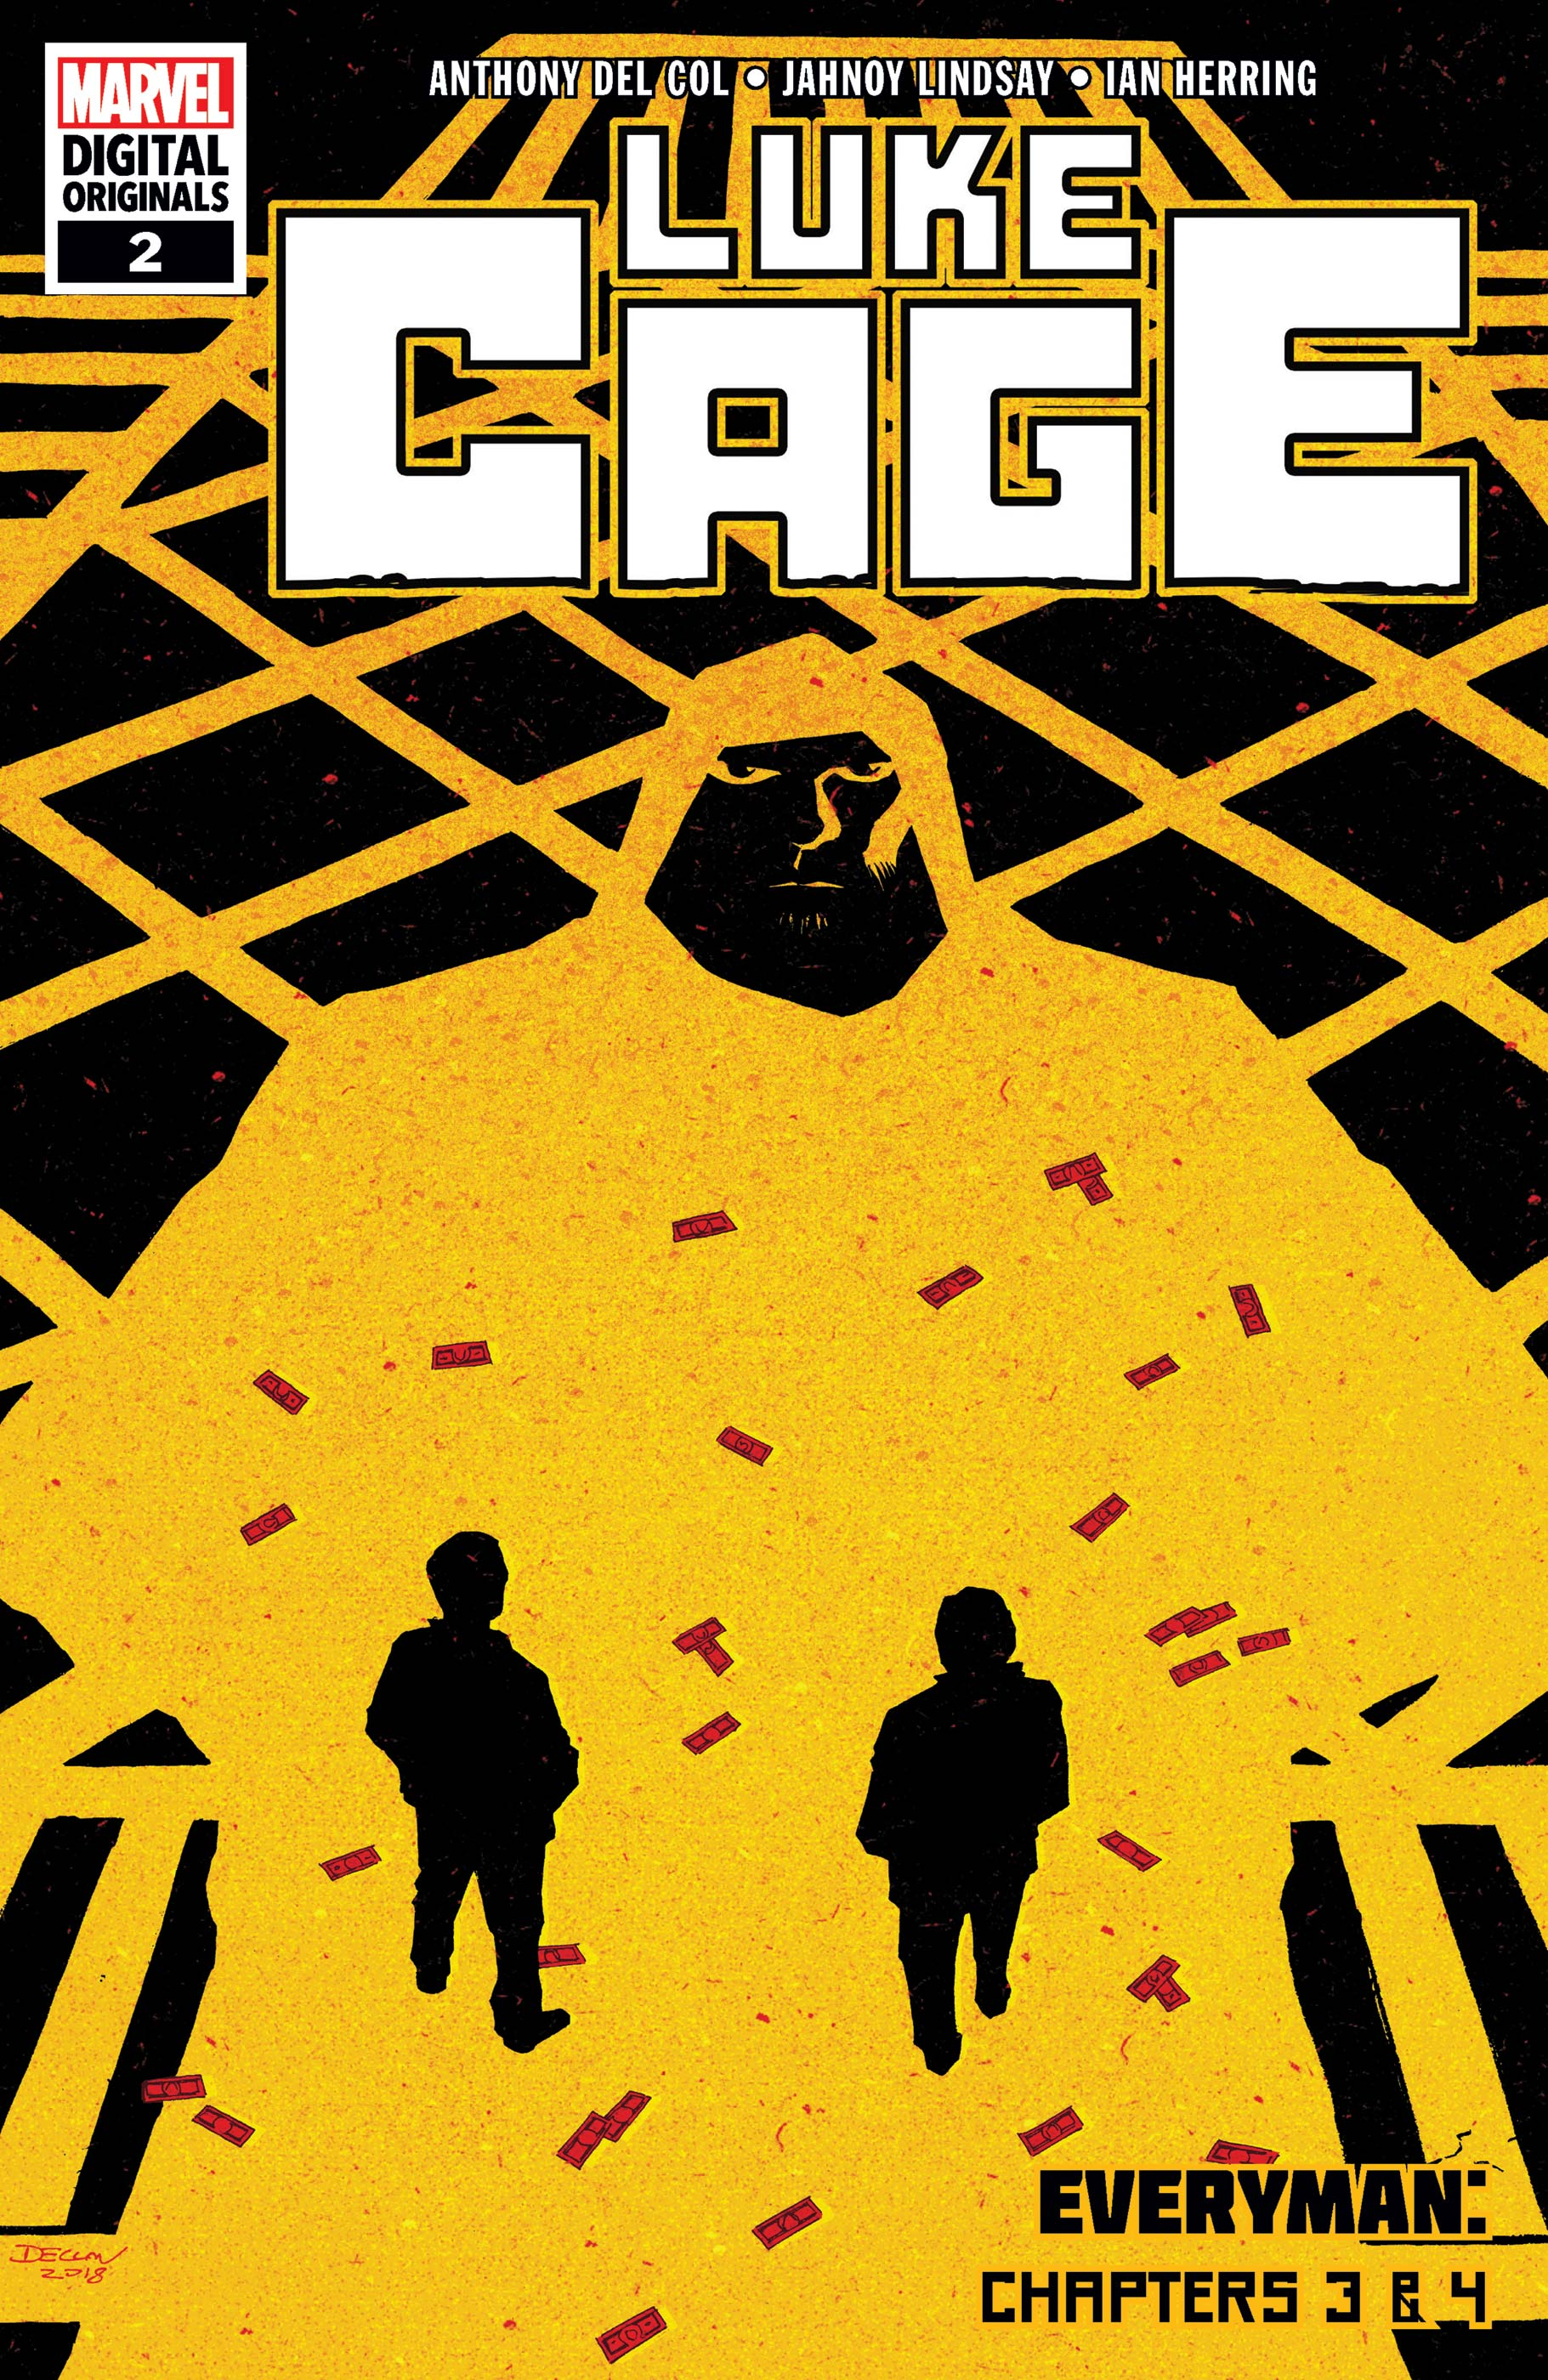 Luke Cage - Marvel Digital Original (2018) #2